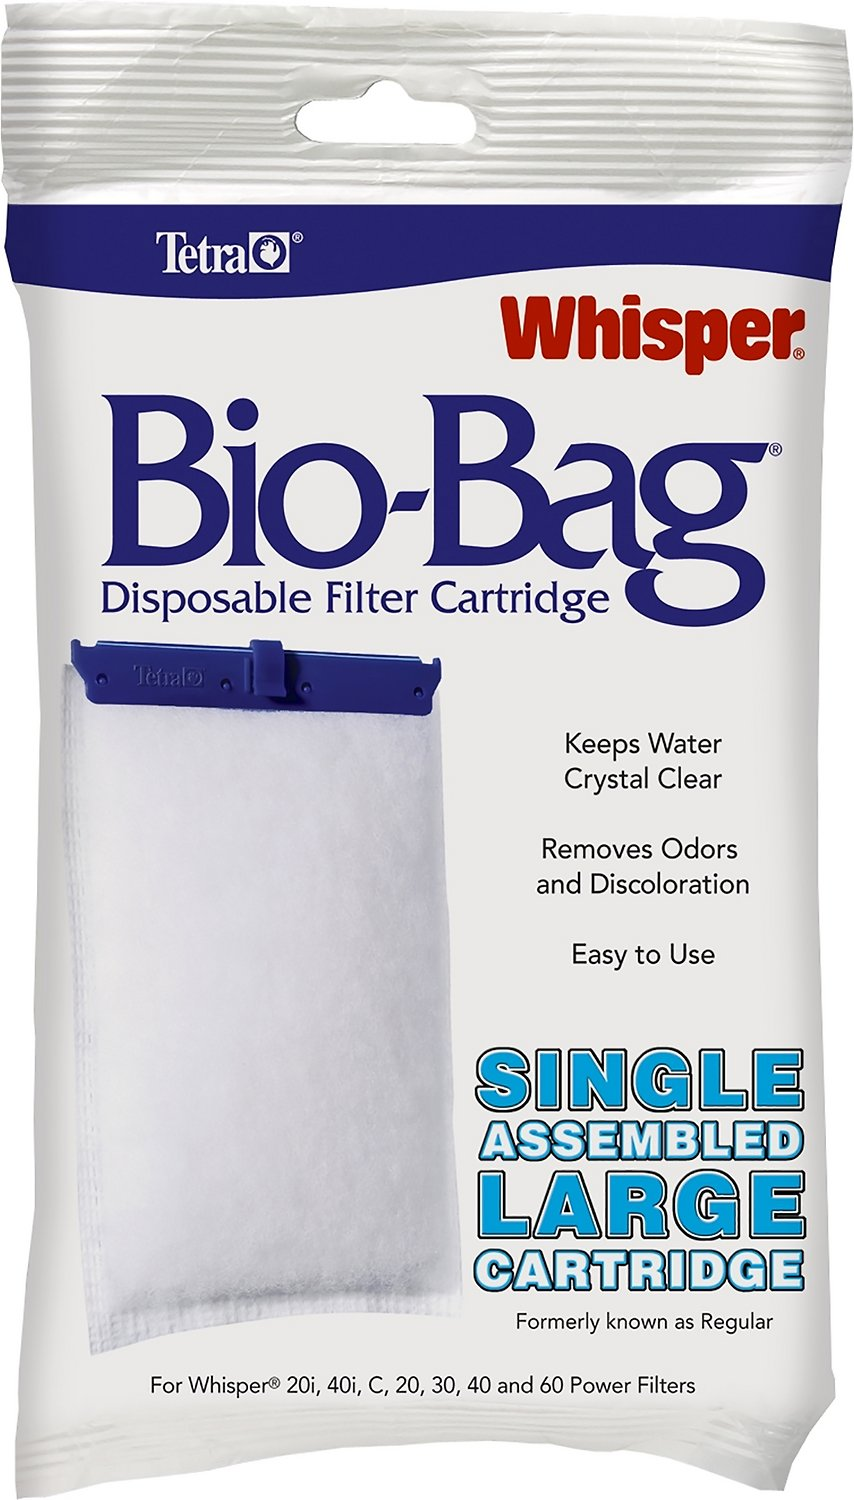 Tetra Whisper Bio Bags Large Filter Cartridge 1 Count